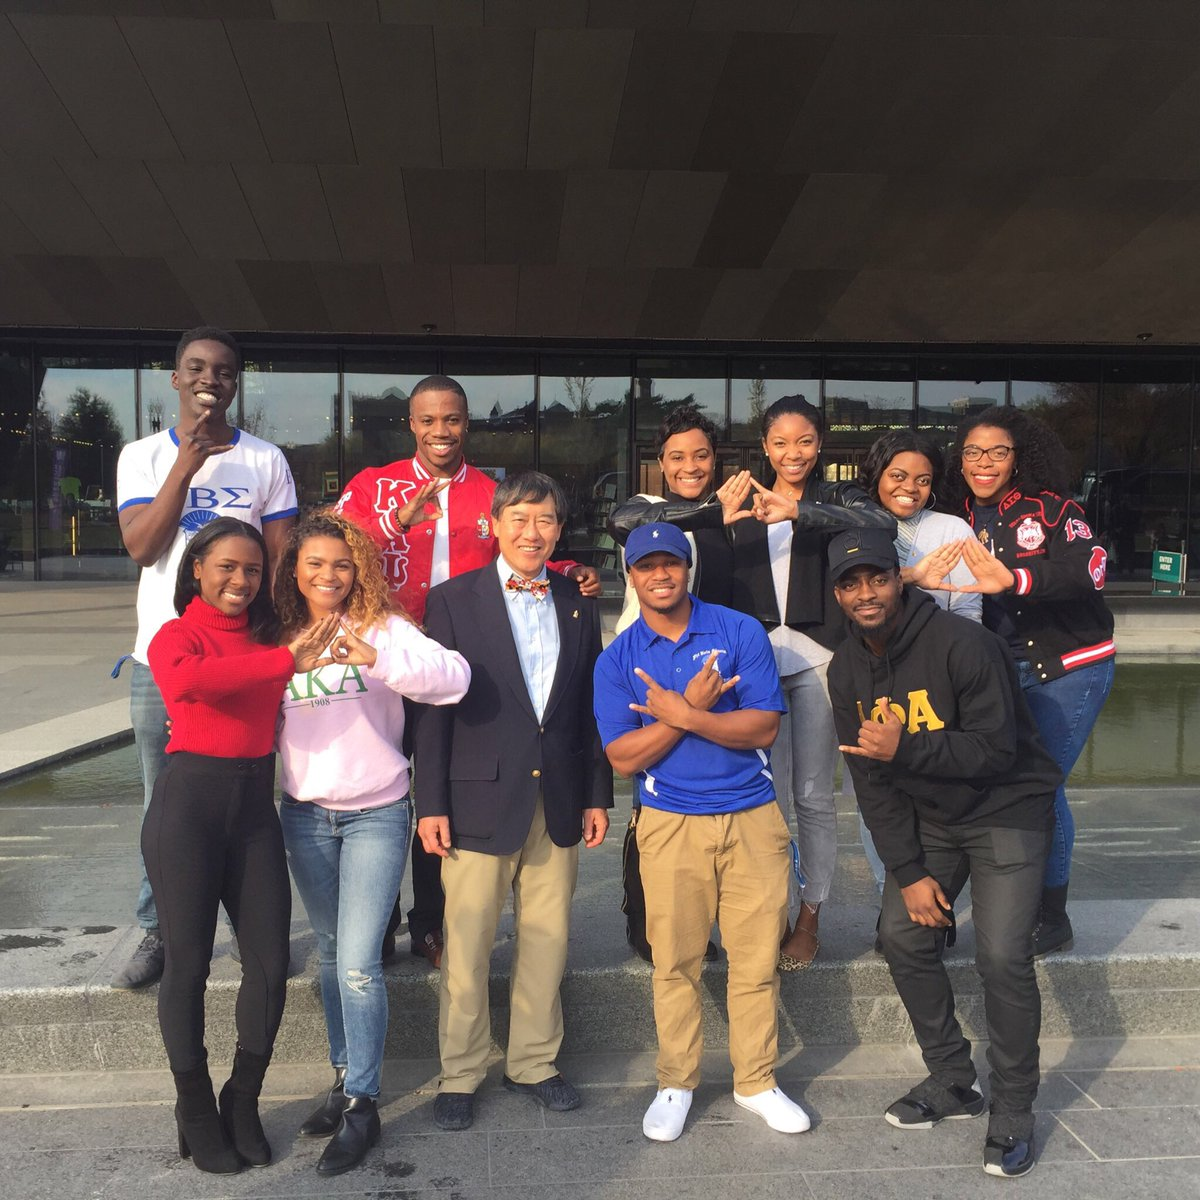 @TheRealNPHC takes to a powerful day at the NAAMHC with @presidentloh and @SSLC_UMD! #APeoplesJourney https://t.co/5VXV7Vbgzj